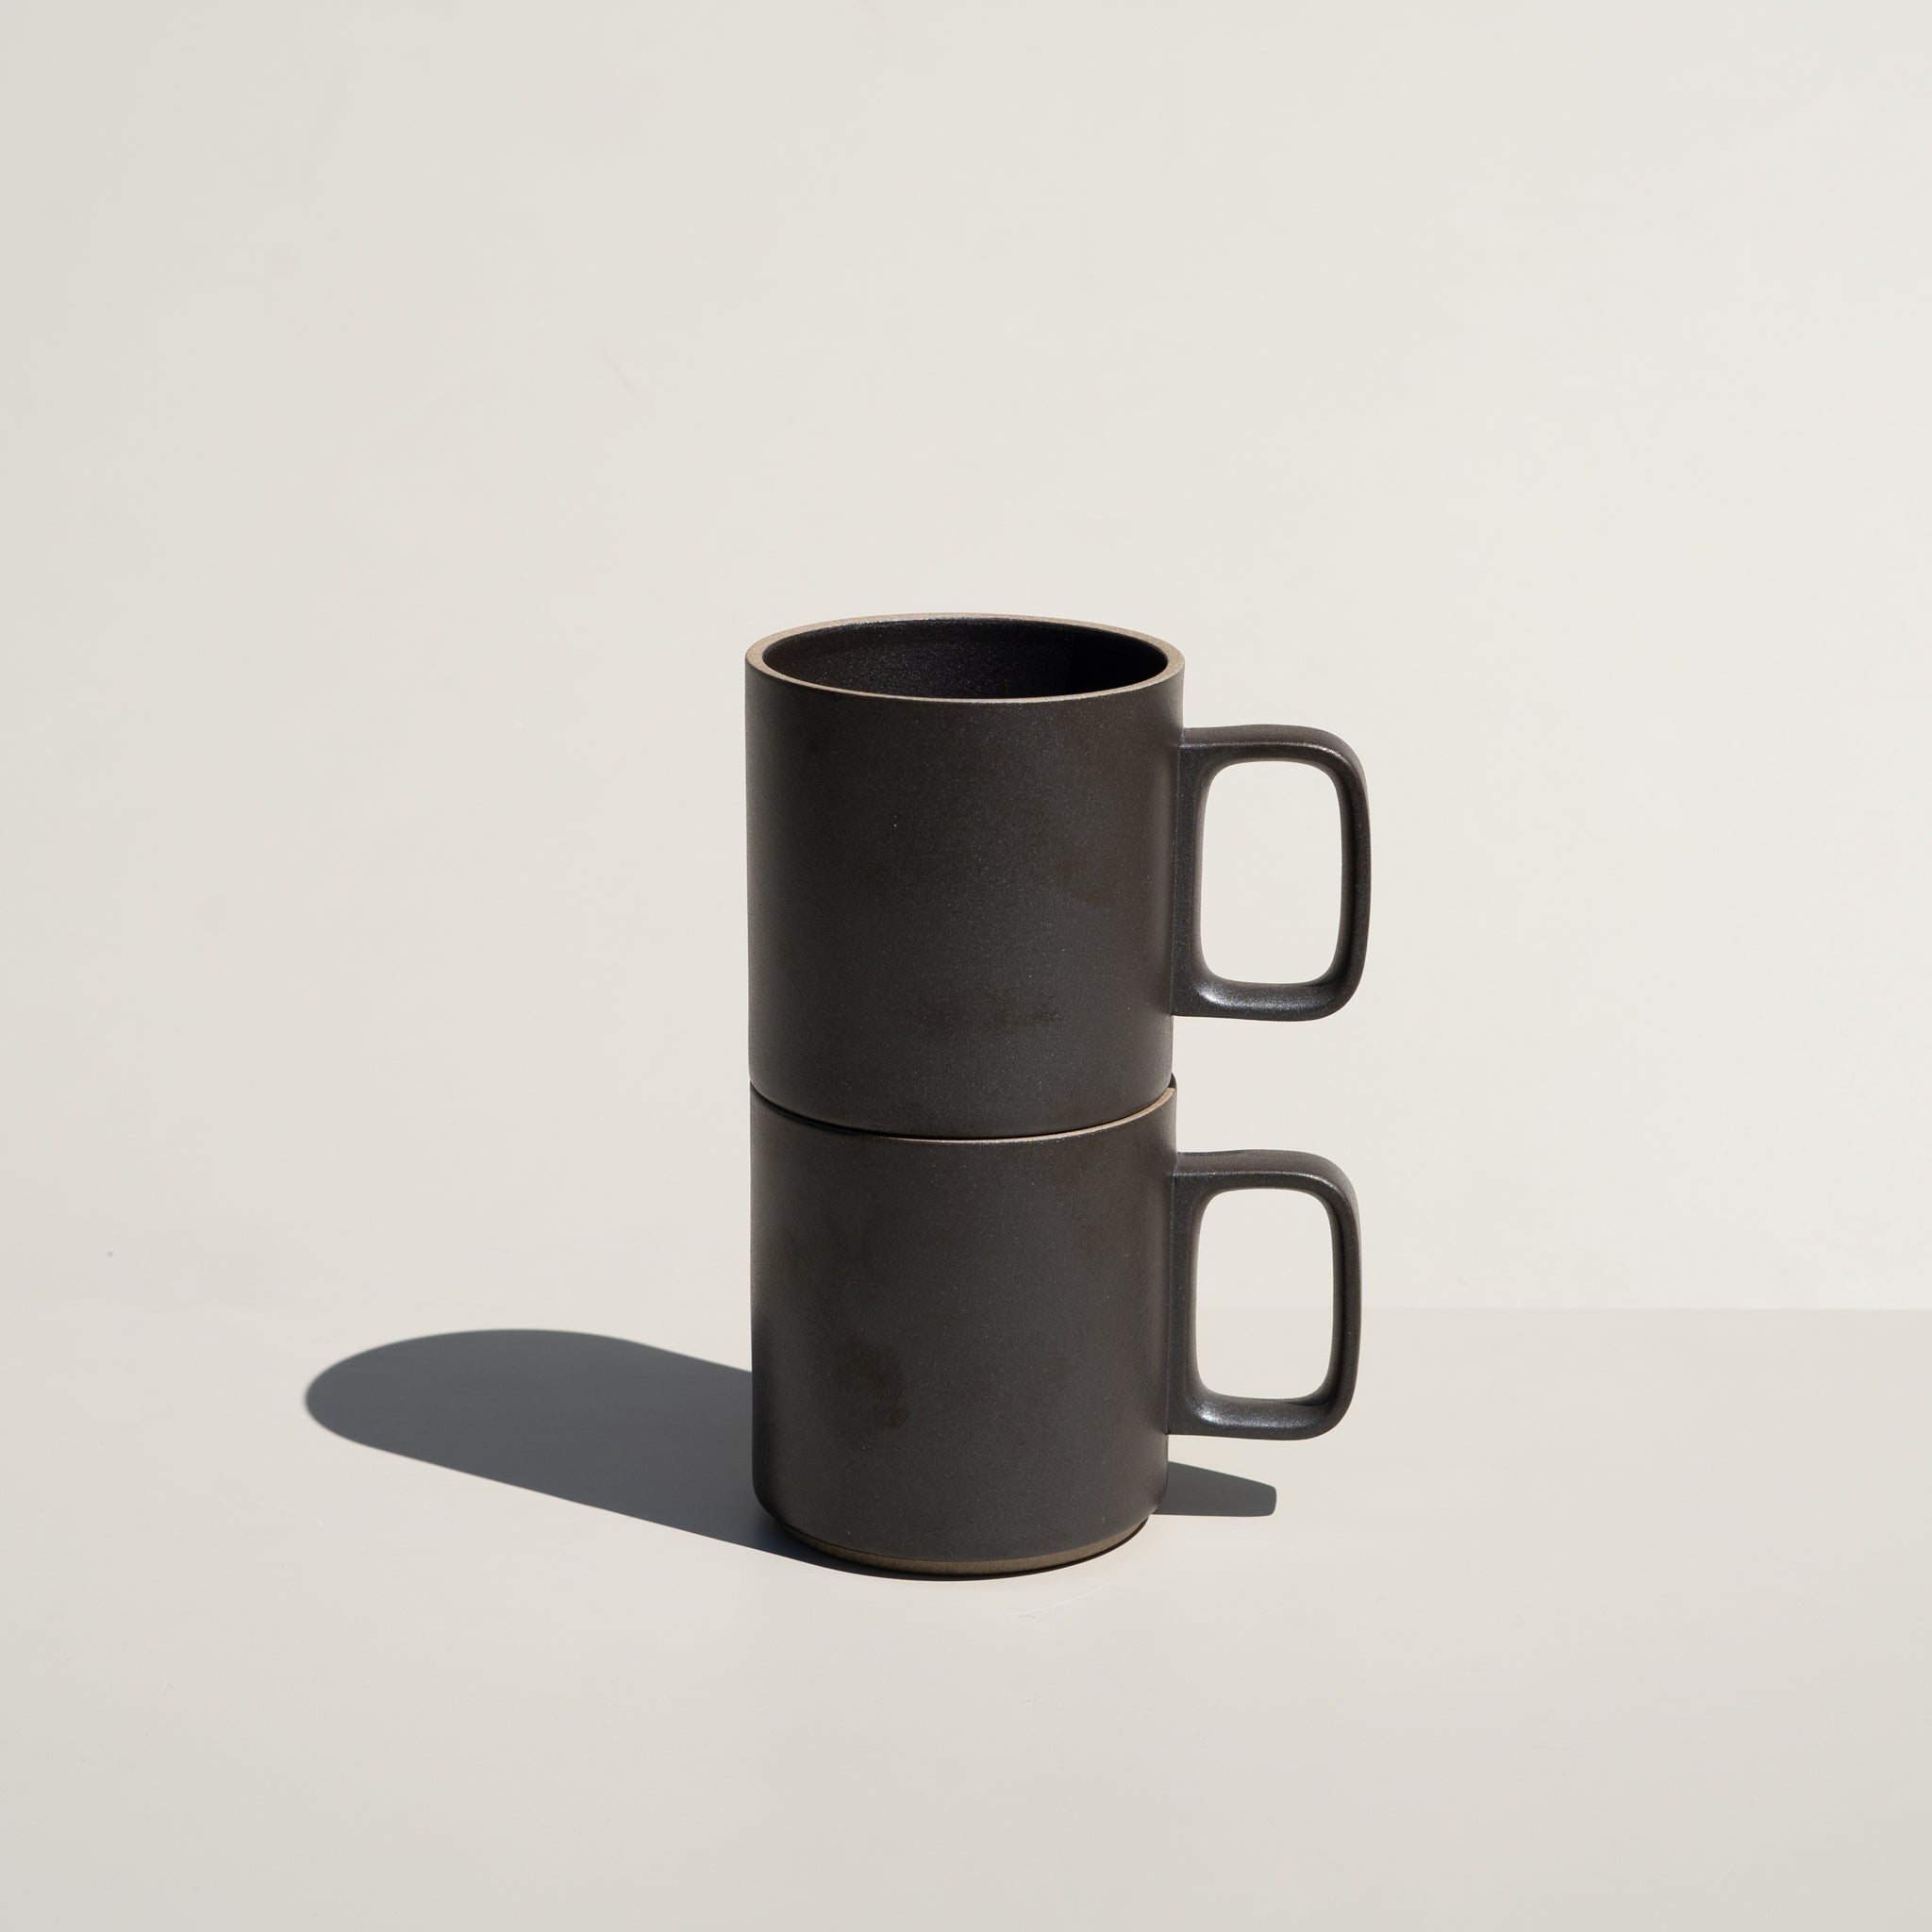 The 13oz Mug in black from Hasami Porcelain has a stackable design.